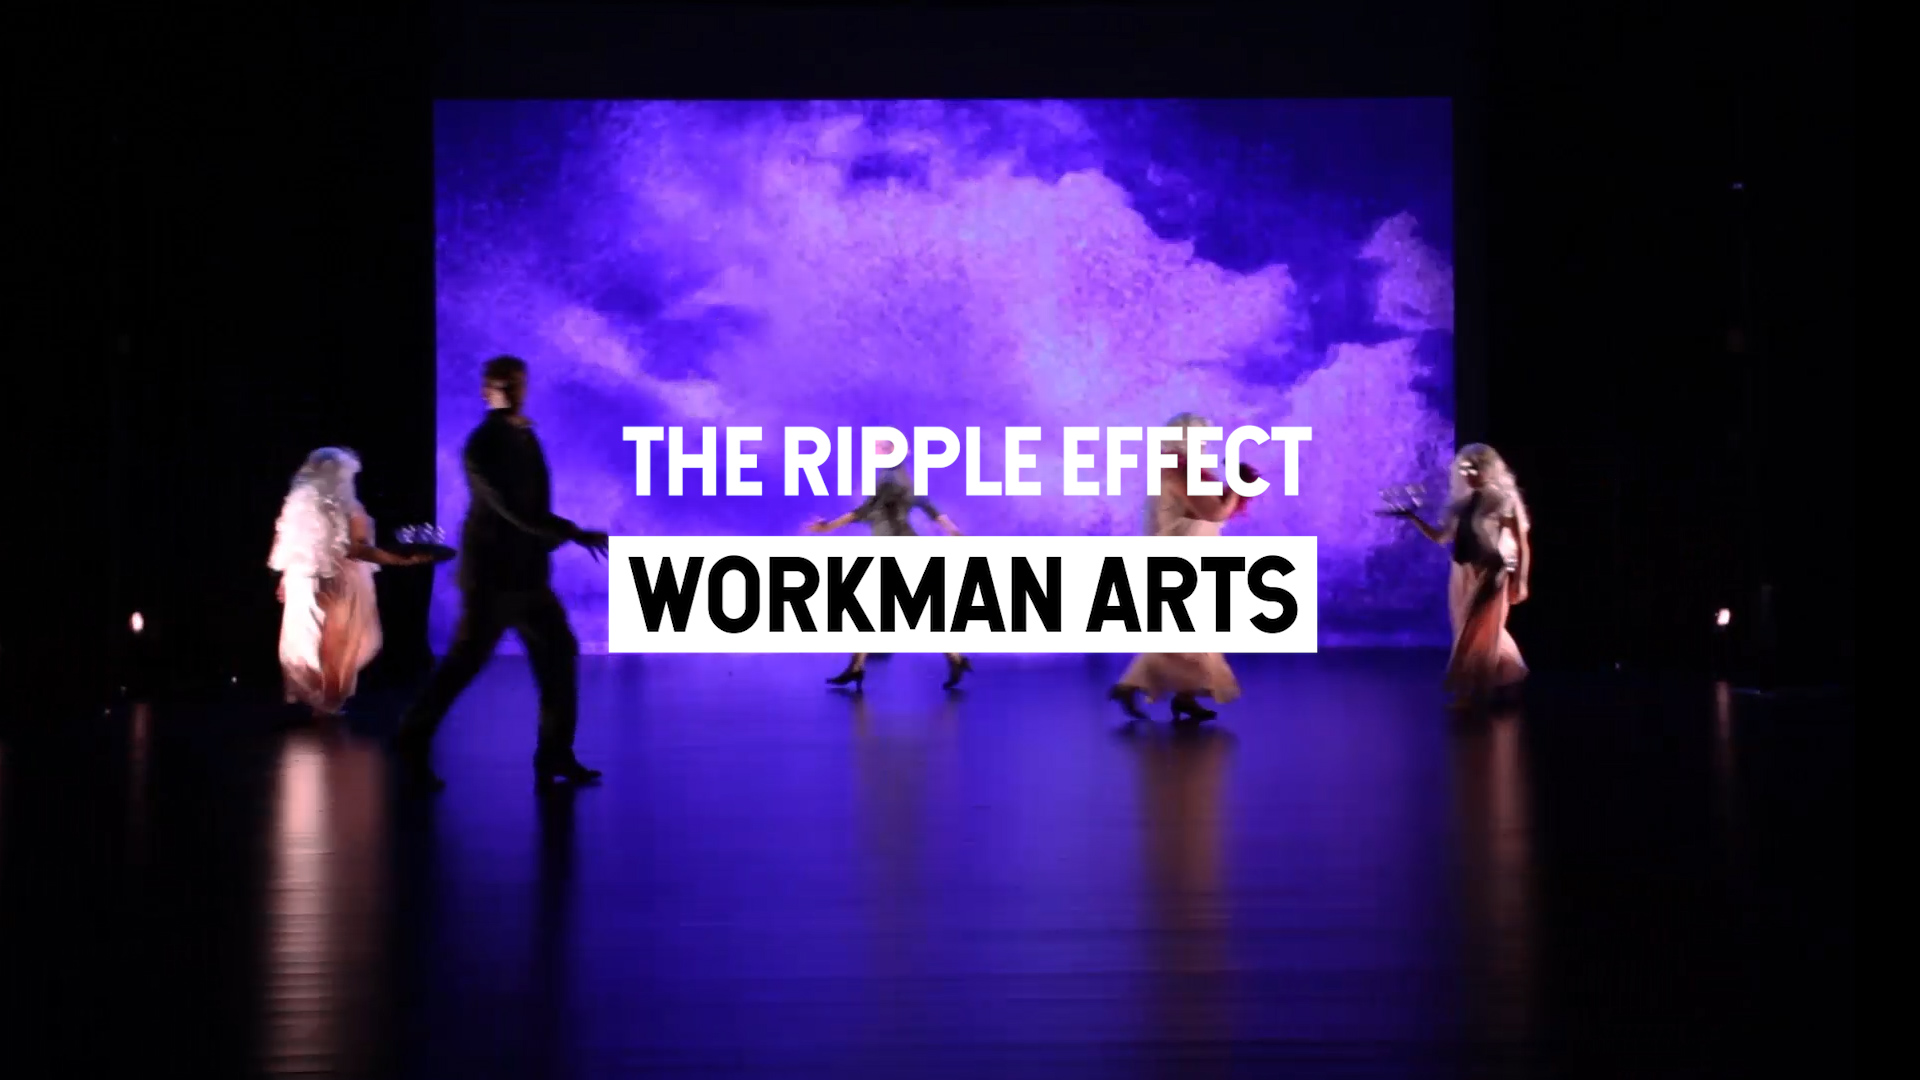 Workman Arts